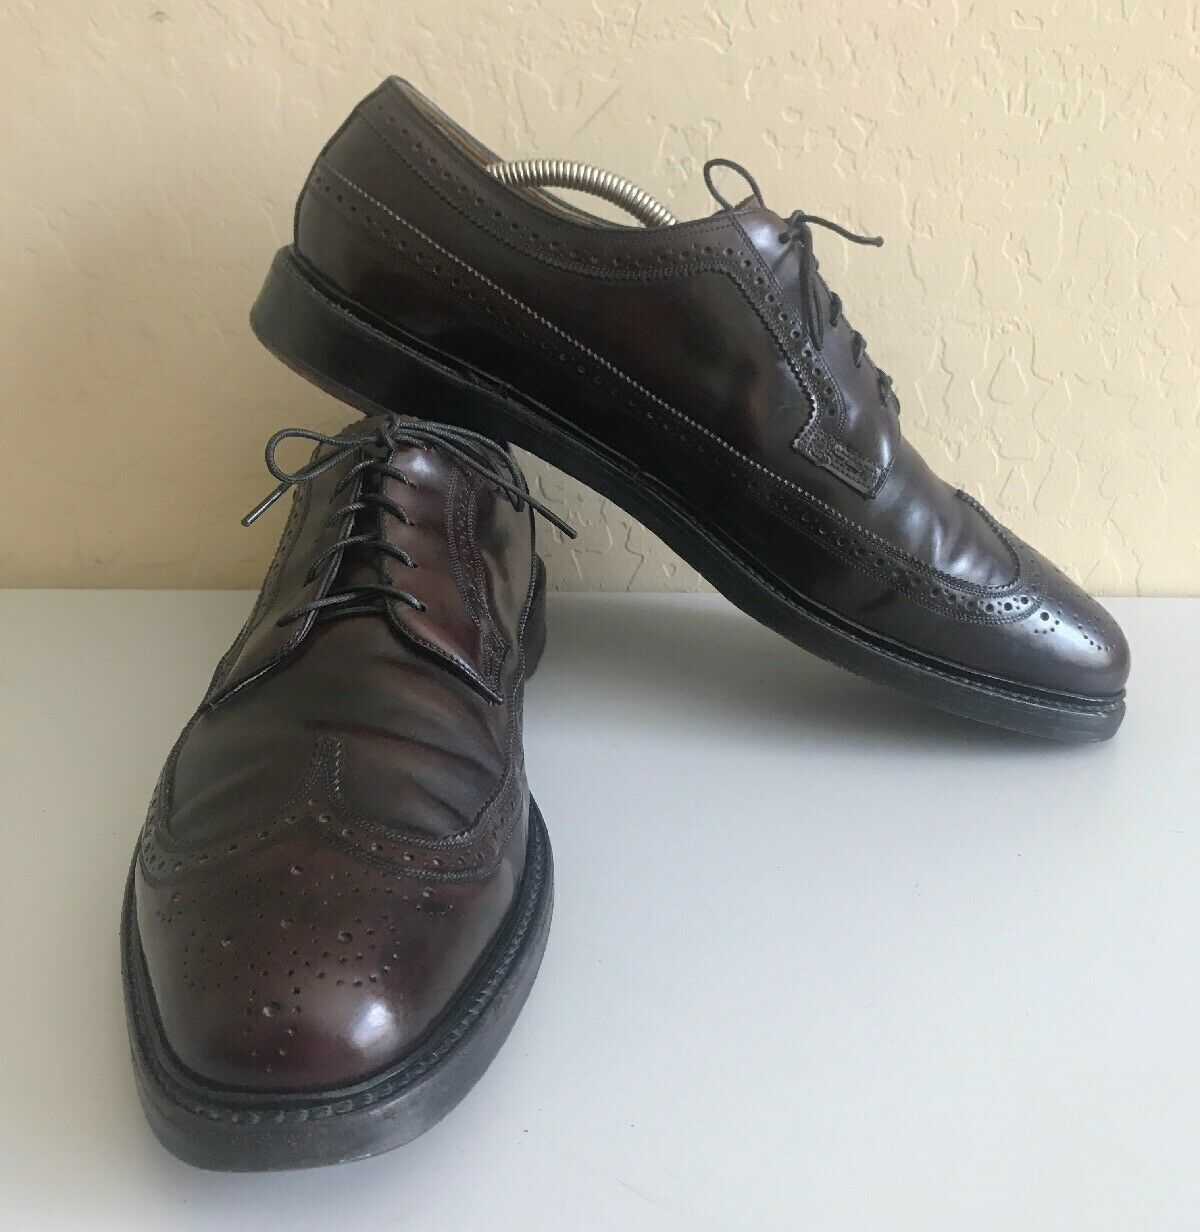 FLORSHEIM IMPERIAL Kenmoor 93605 Shell Cordovan Wingtip 5-Nail V-Cleat Size 13 B